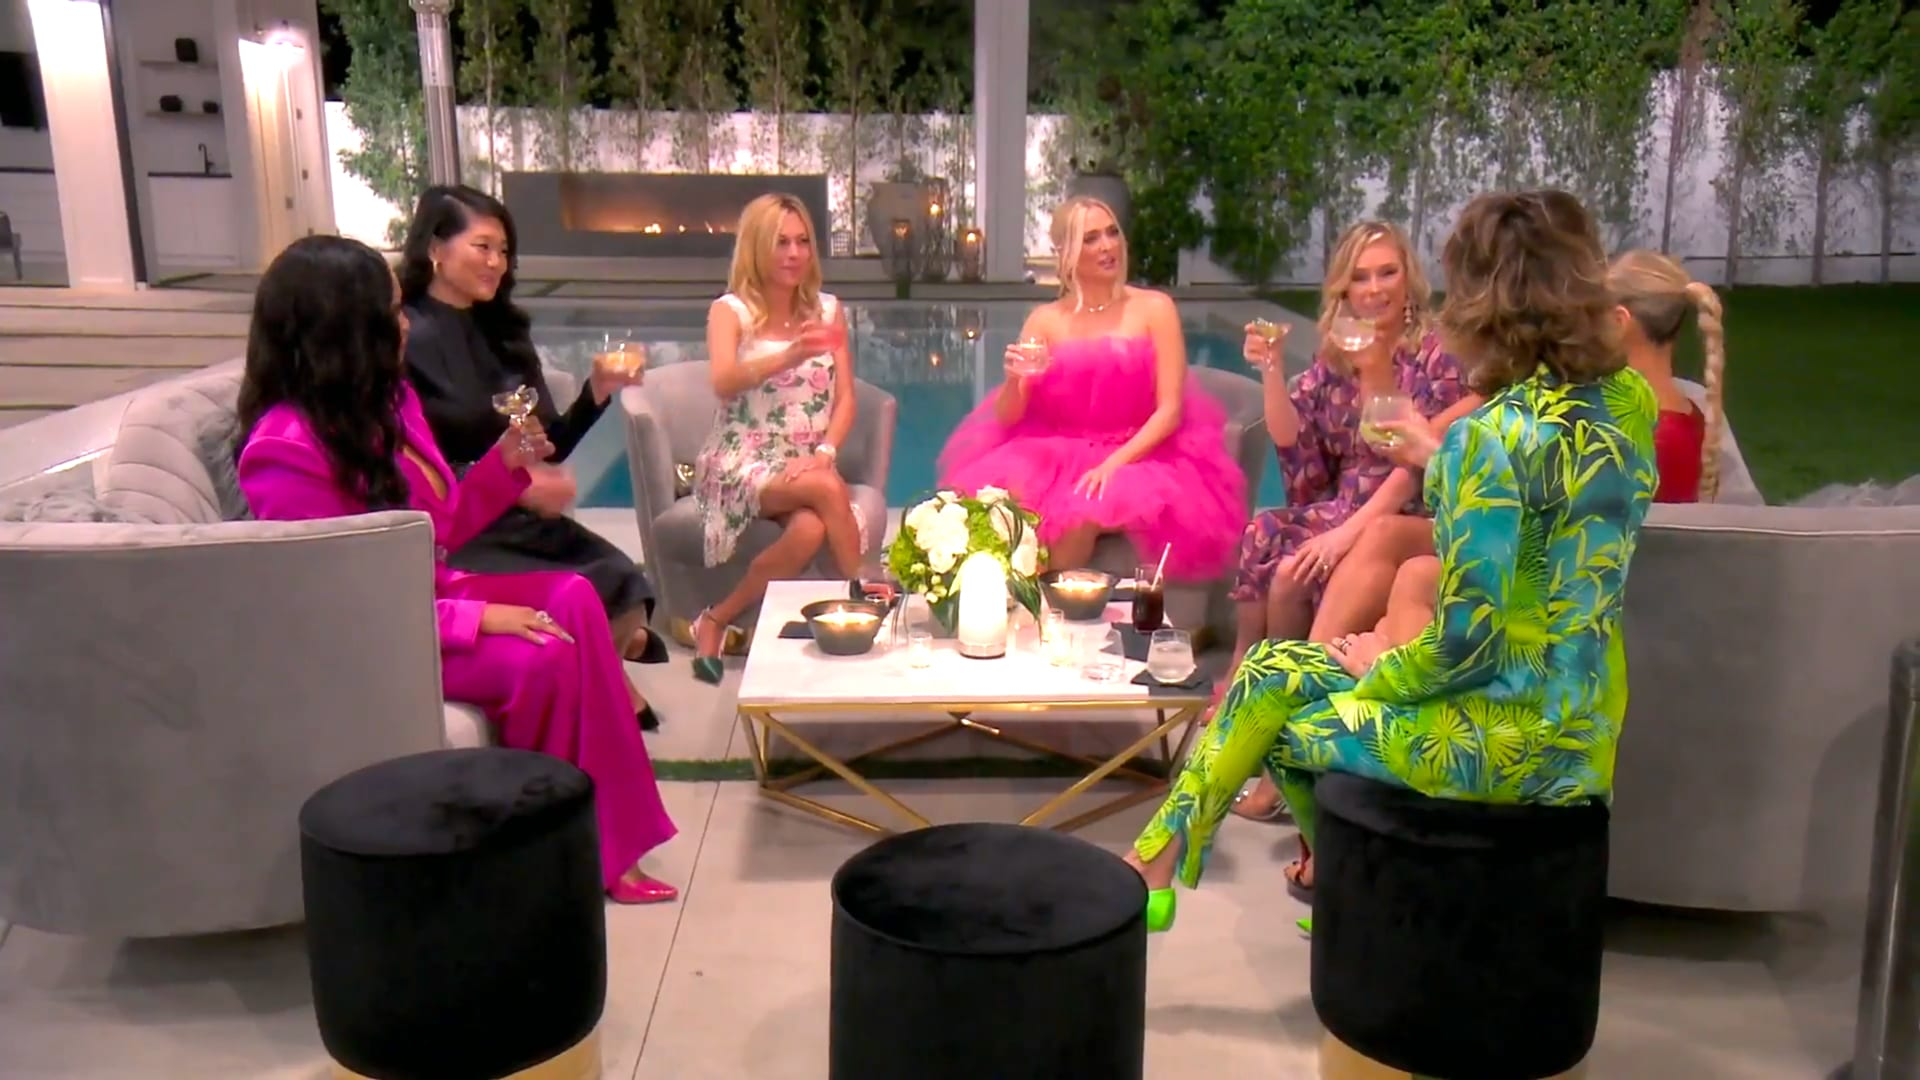 Preview: The Real Housewives of Beverly Hills Season 11 Episode 6